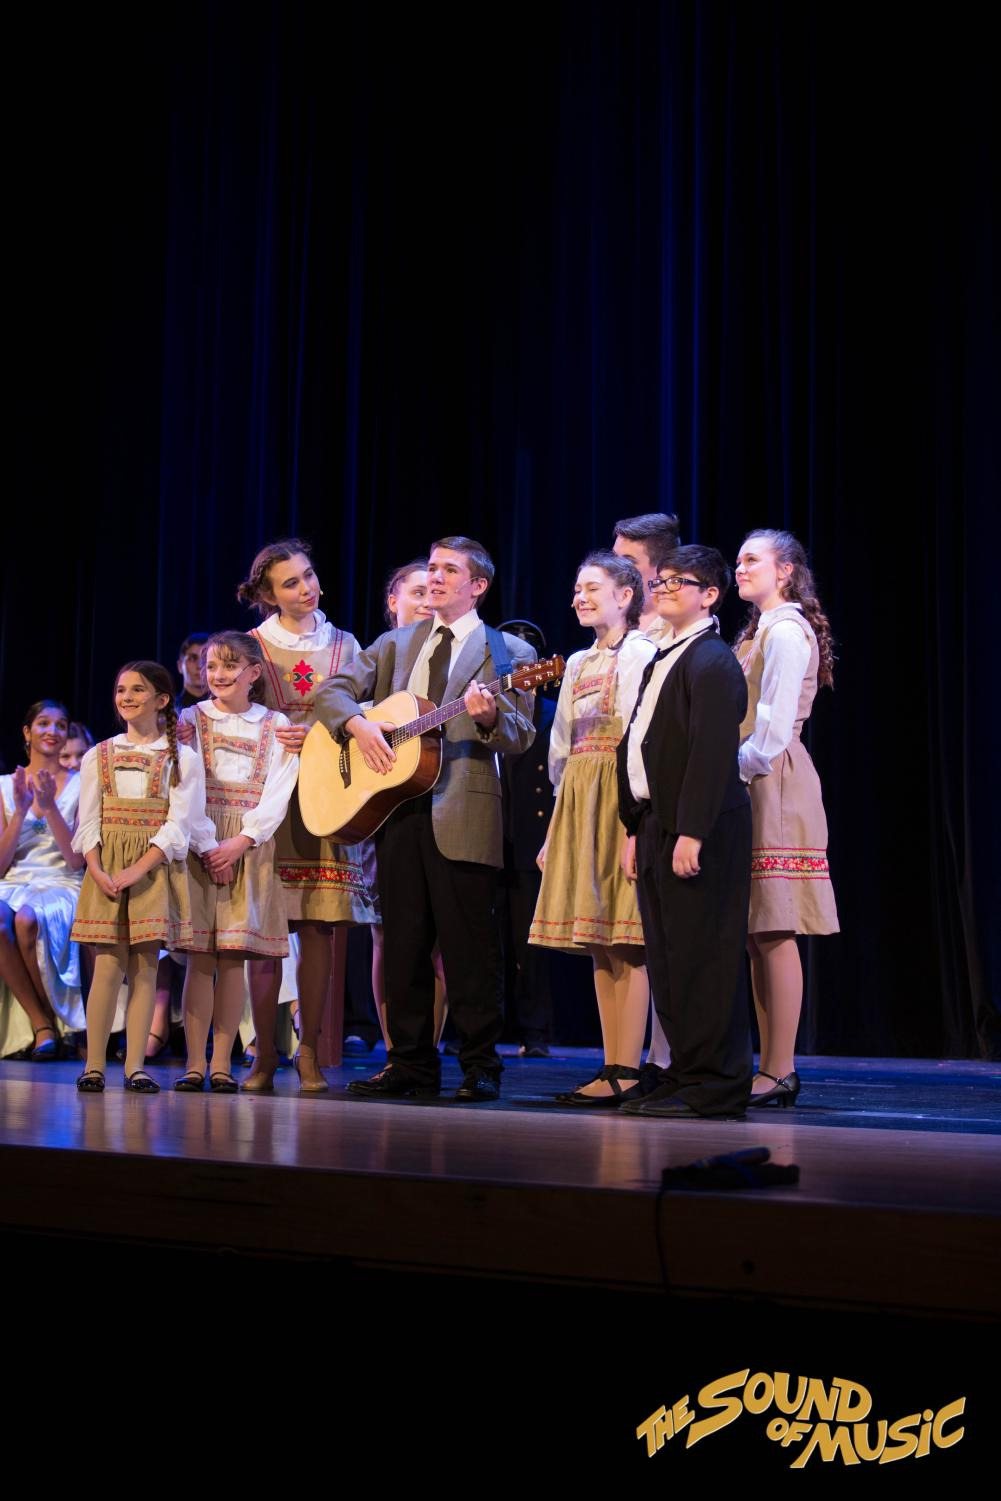 Senior Michael O'Connor, playing   Captain Georg von Trapp, pictured singing accompanied by acoustic guitar.